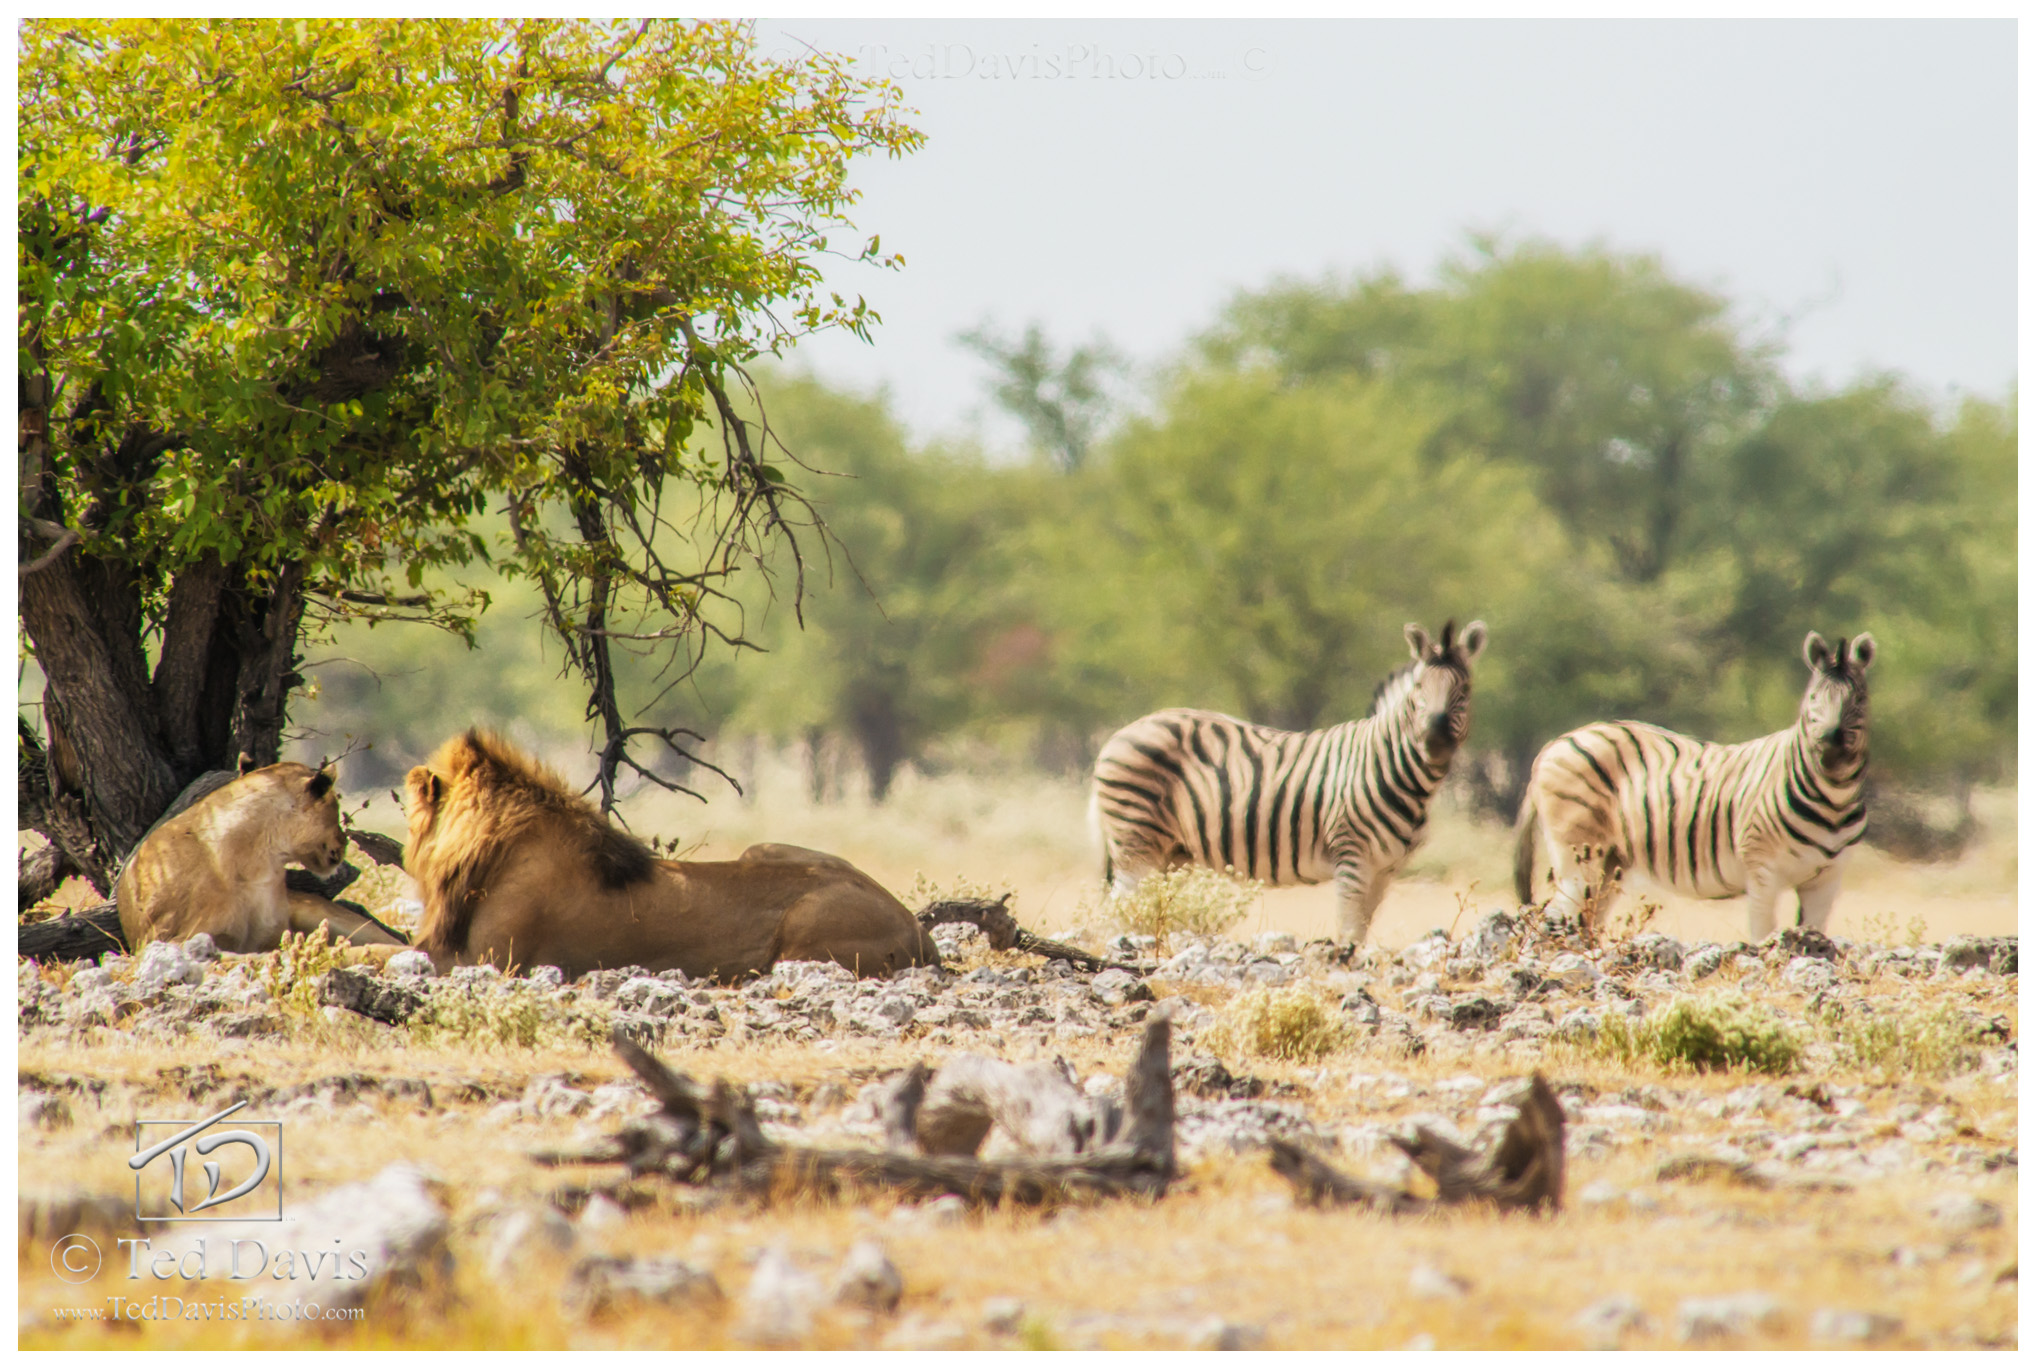 lions, savanna, stalemate, namibia, etosha, zebra, superzoom, watering, eyes, photo